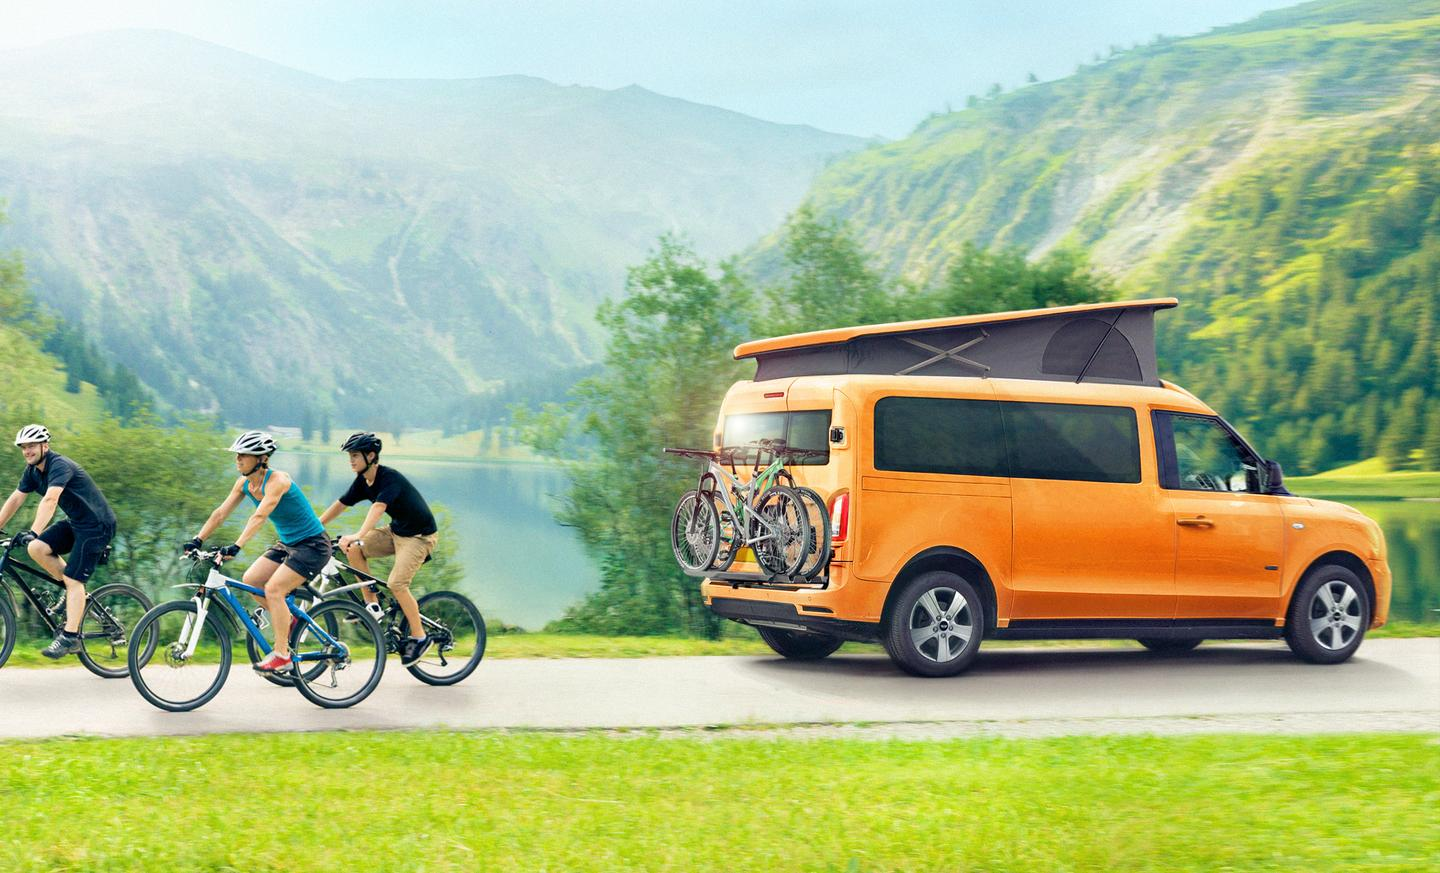 LEVC's all-new e-Camper will become a capable plug-in hybrid camper van for four people